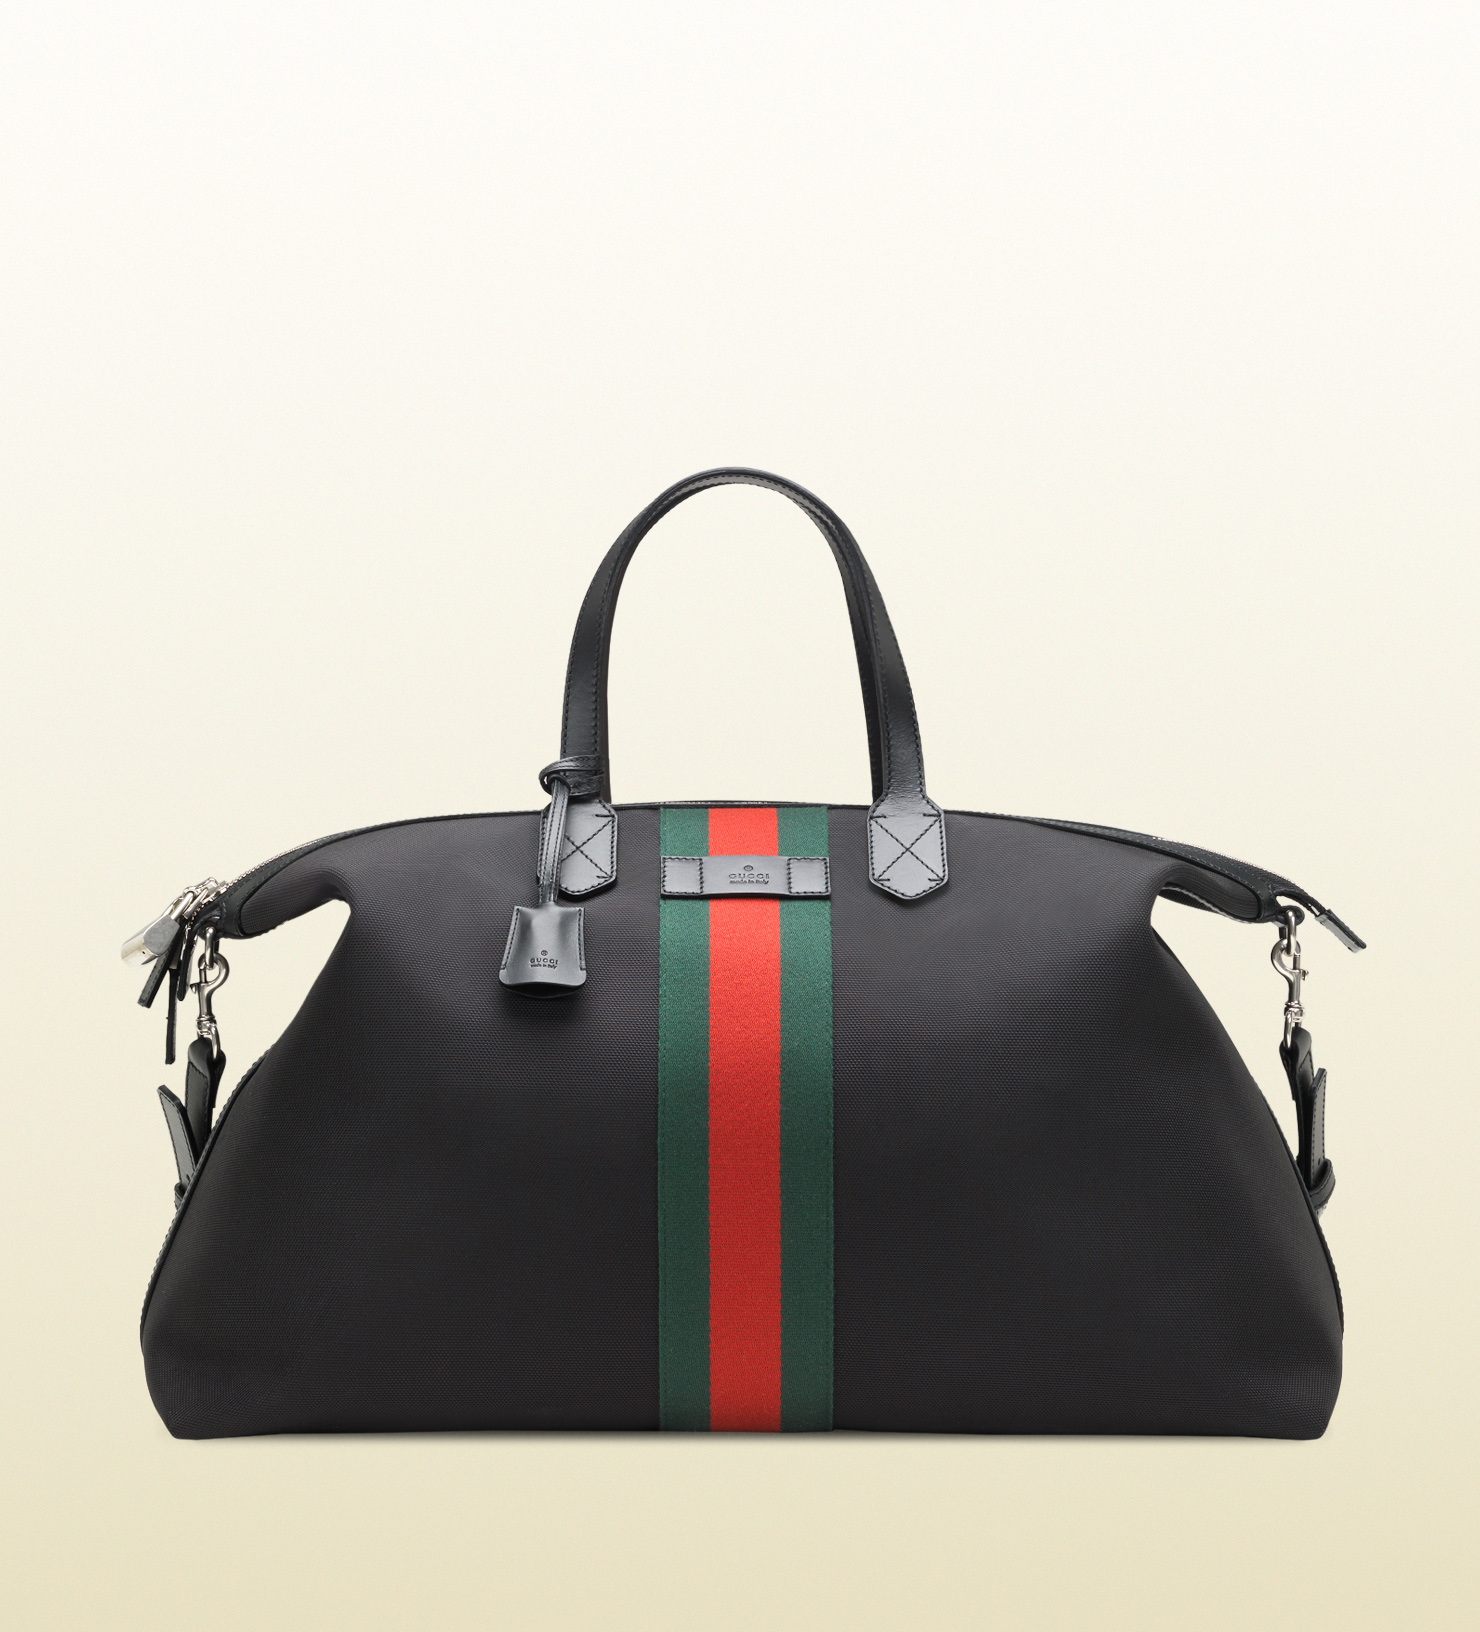 070ef5aff9b8 Lyst - Gucci Techno Canvas Duffle Carry-on Bag in Black for Men